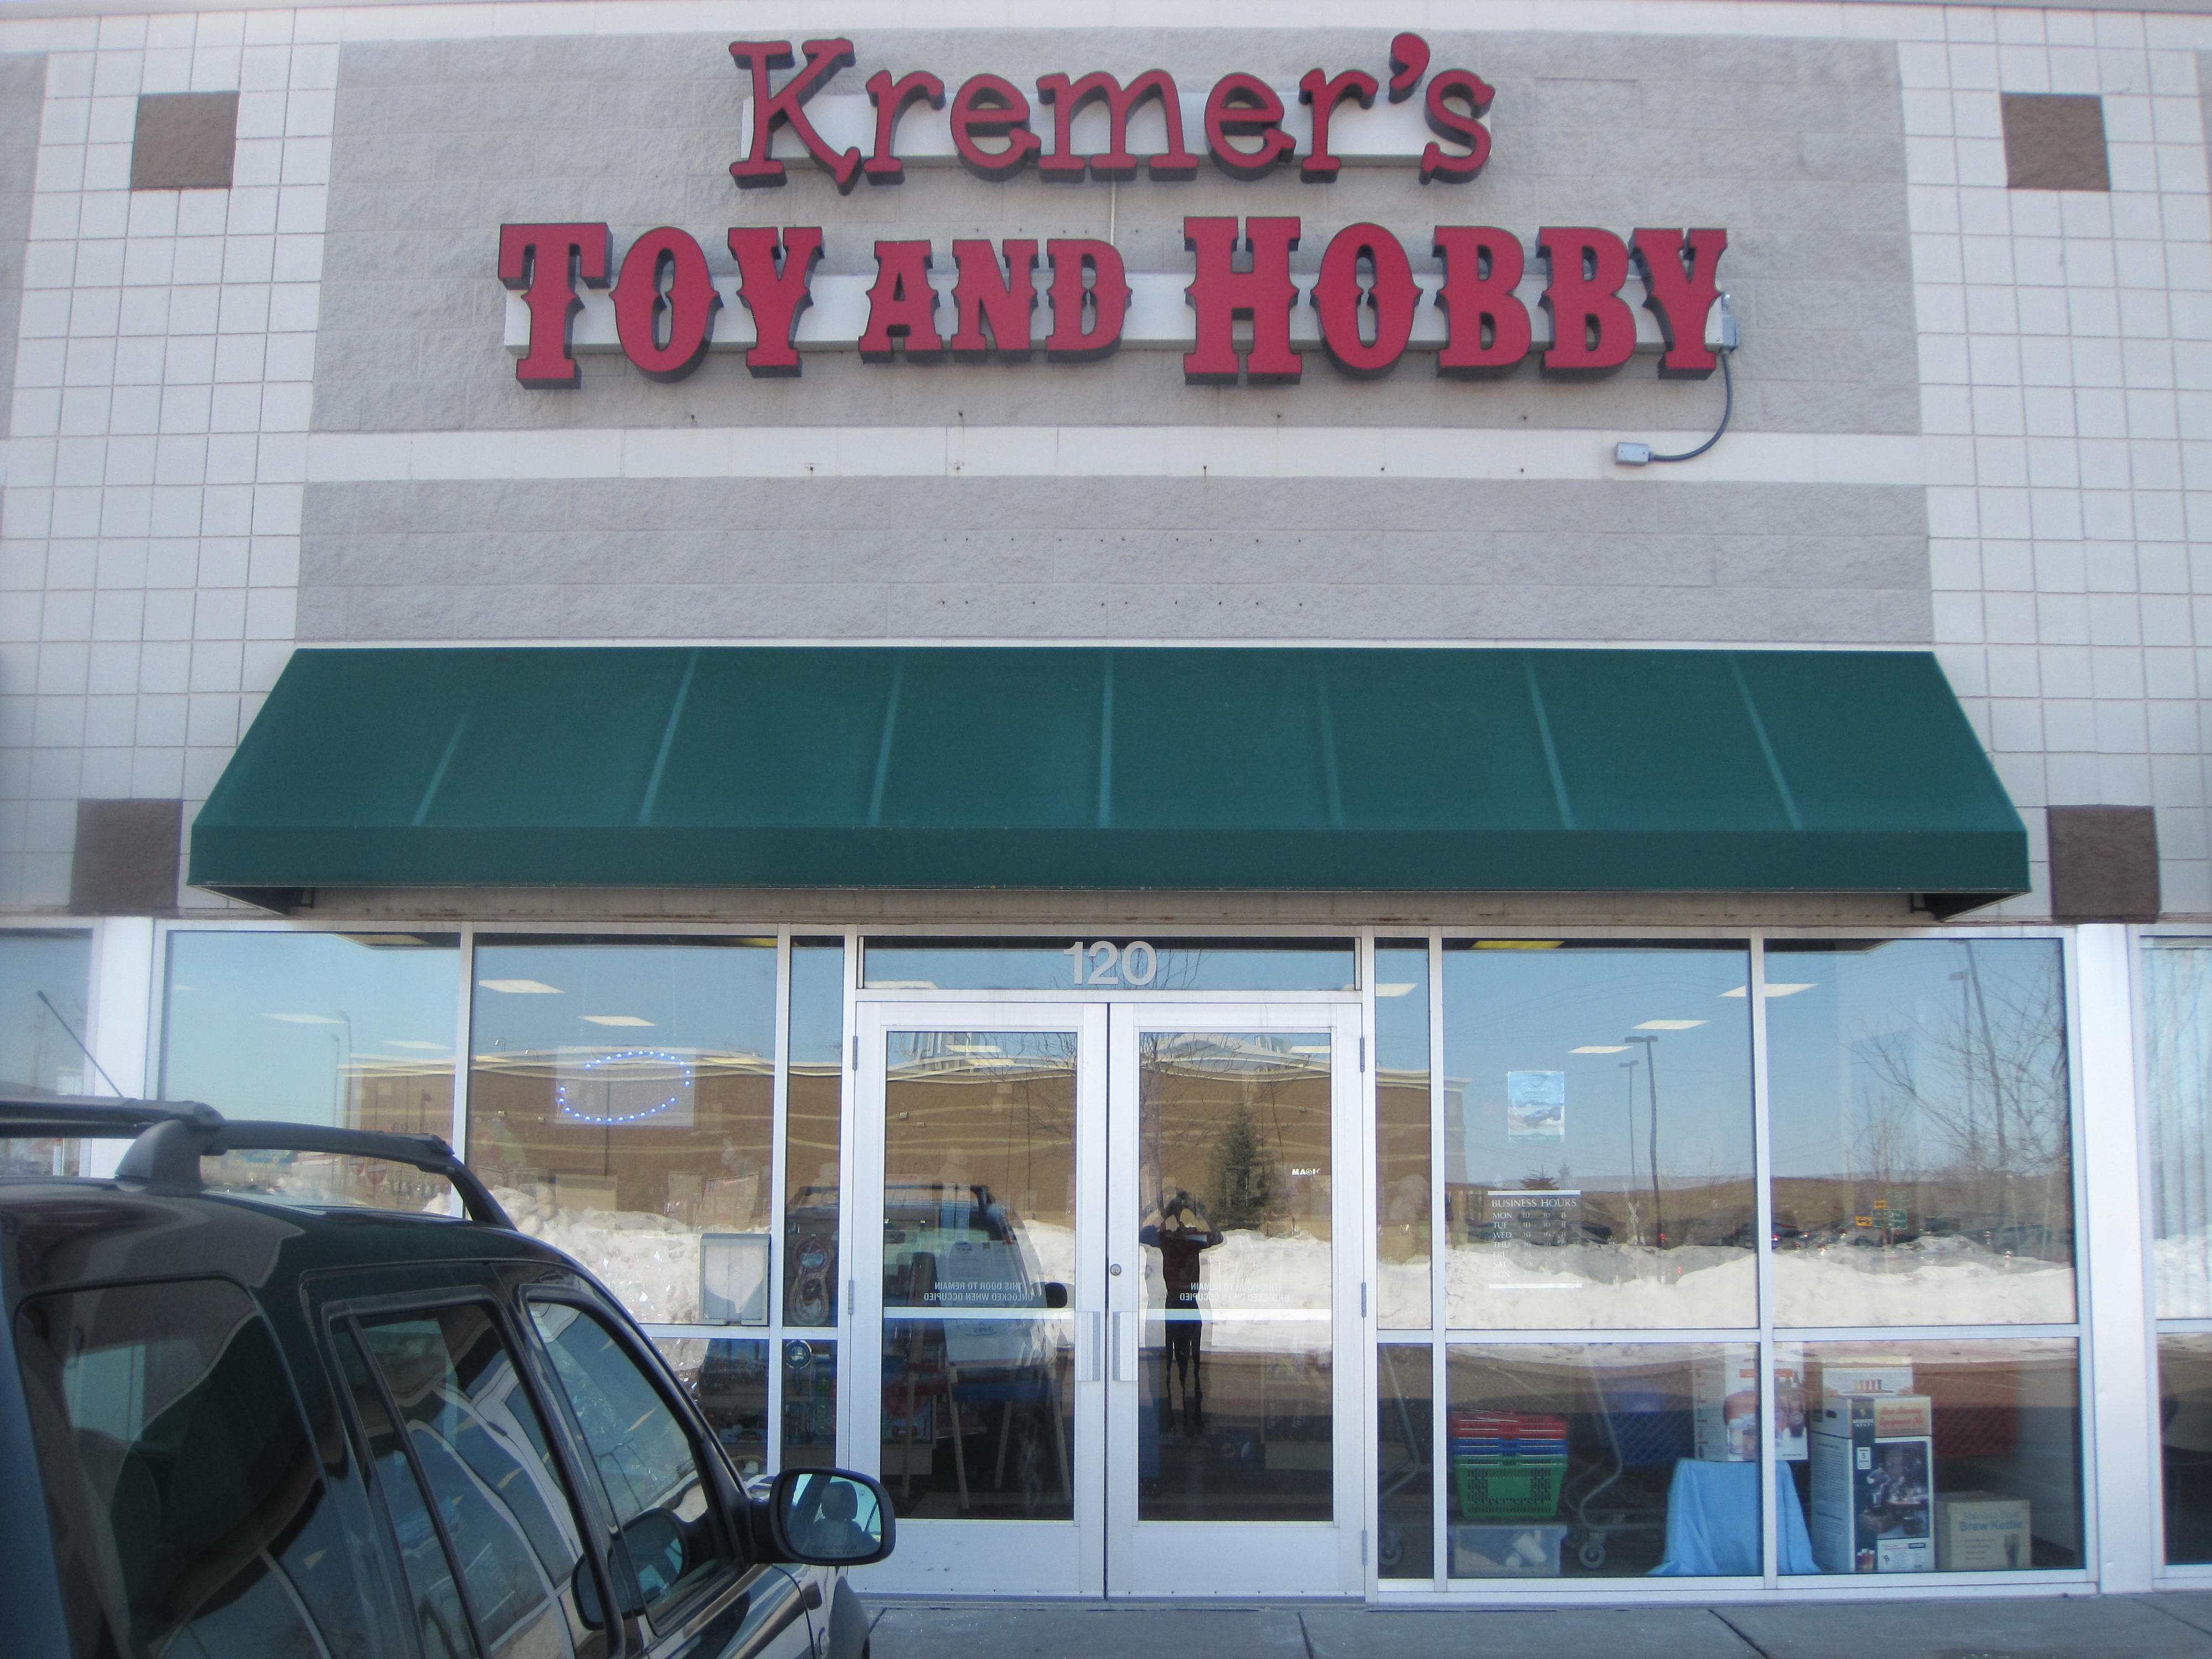 Kremer's Toy and Hobby - ad image